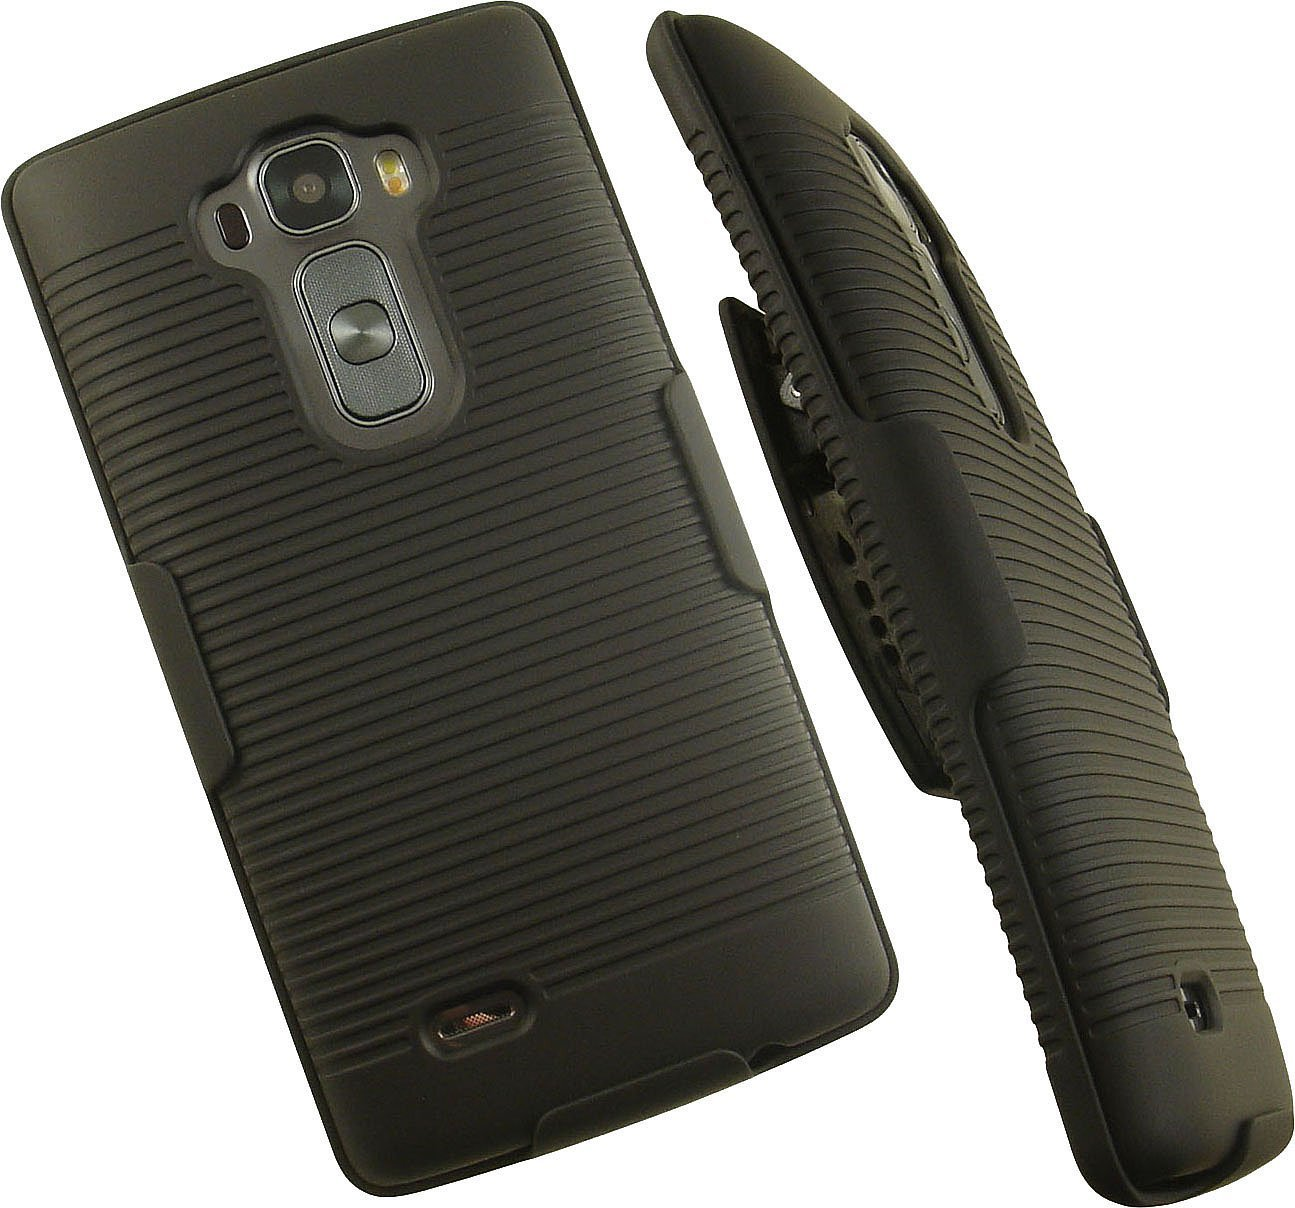 NAKEDCELLPHONE'S BLACK RIBBED RUBBERIZED HARD SHELL CASE COVER + BELT CLIP HOLSTER STAND FOR LG G FLEX-2 PHONE (SPRINT, AT&T, US CELLULAR) (LG H950, H955, H959, US995, F510, LS996. GFlex-2)